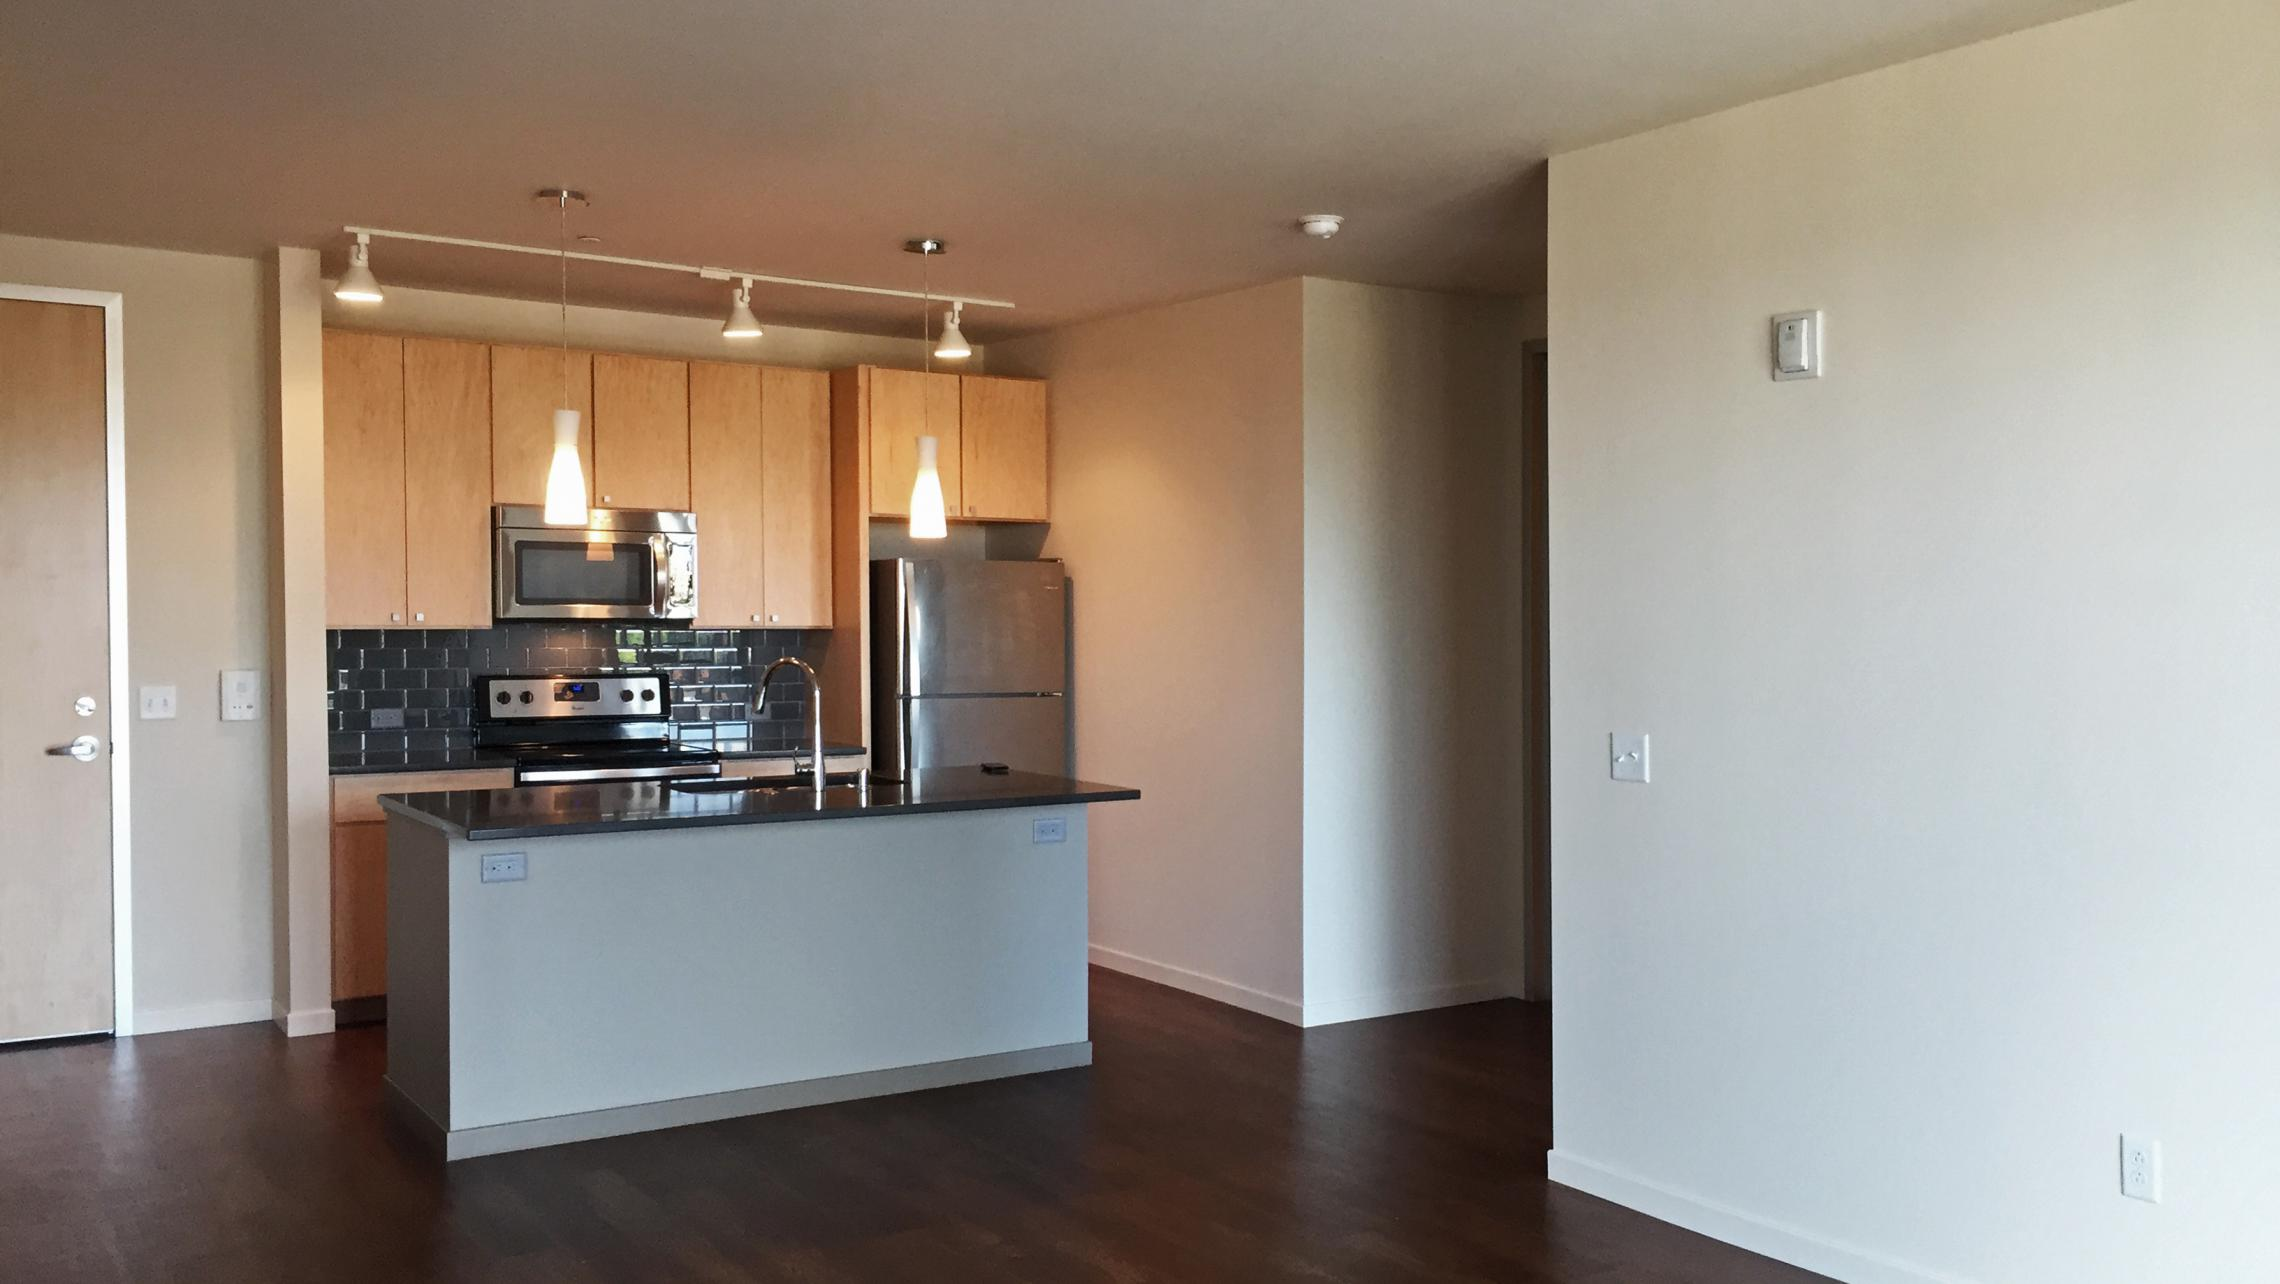 ULI Nine Line Apartment 319 - Kitchen and Living Area